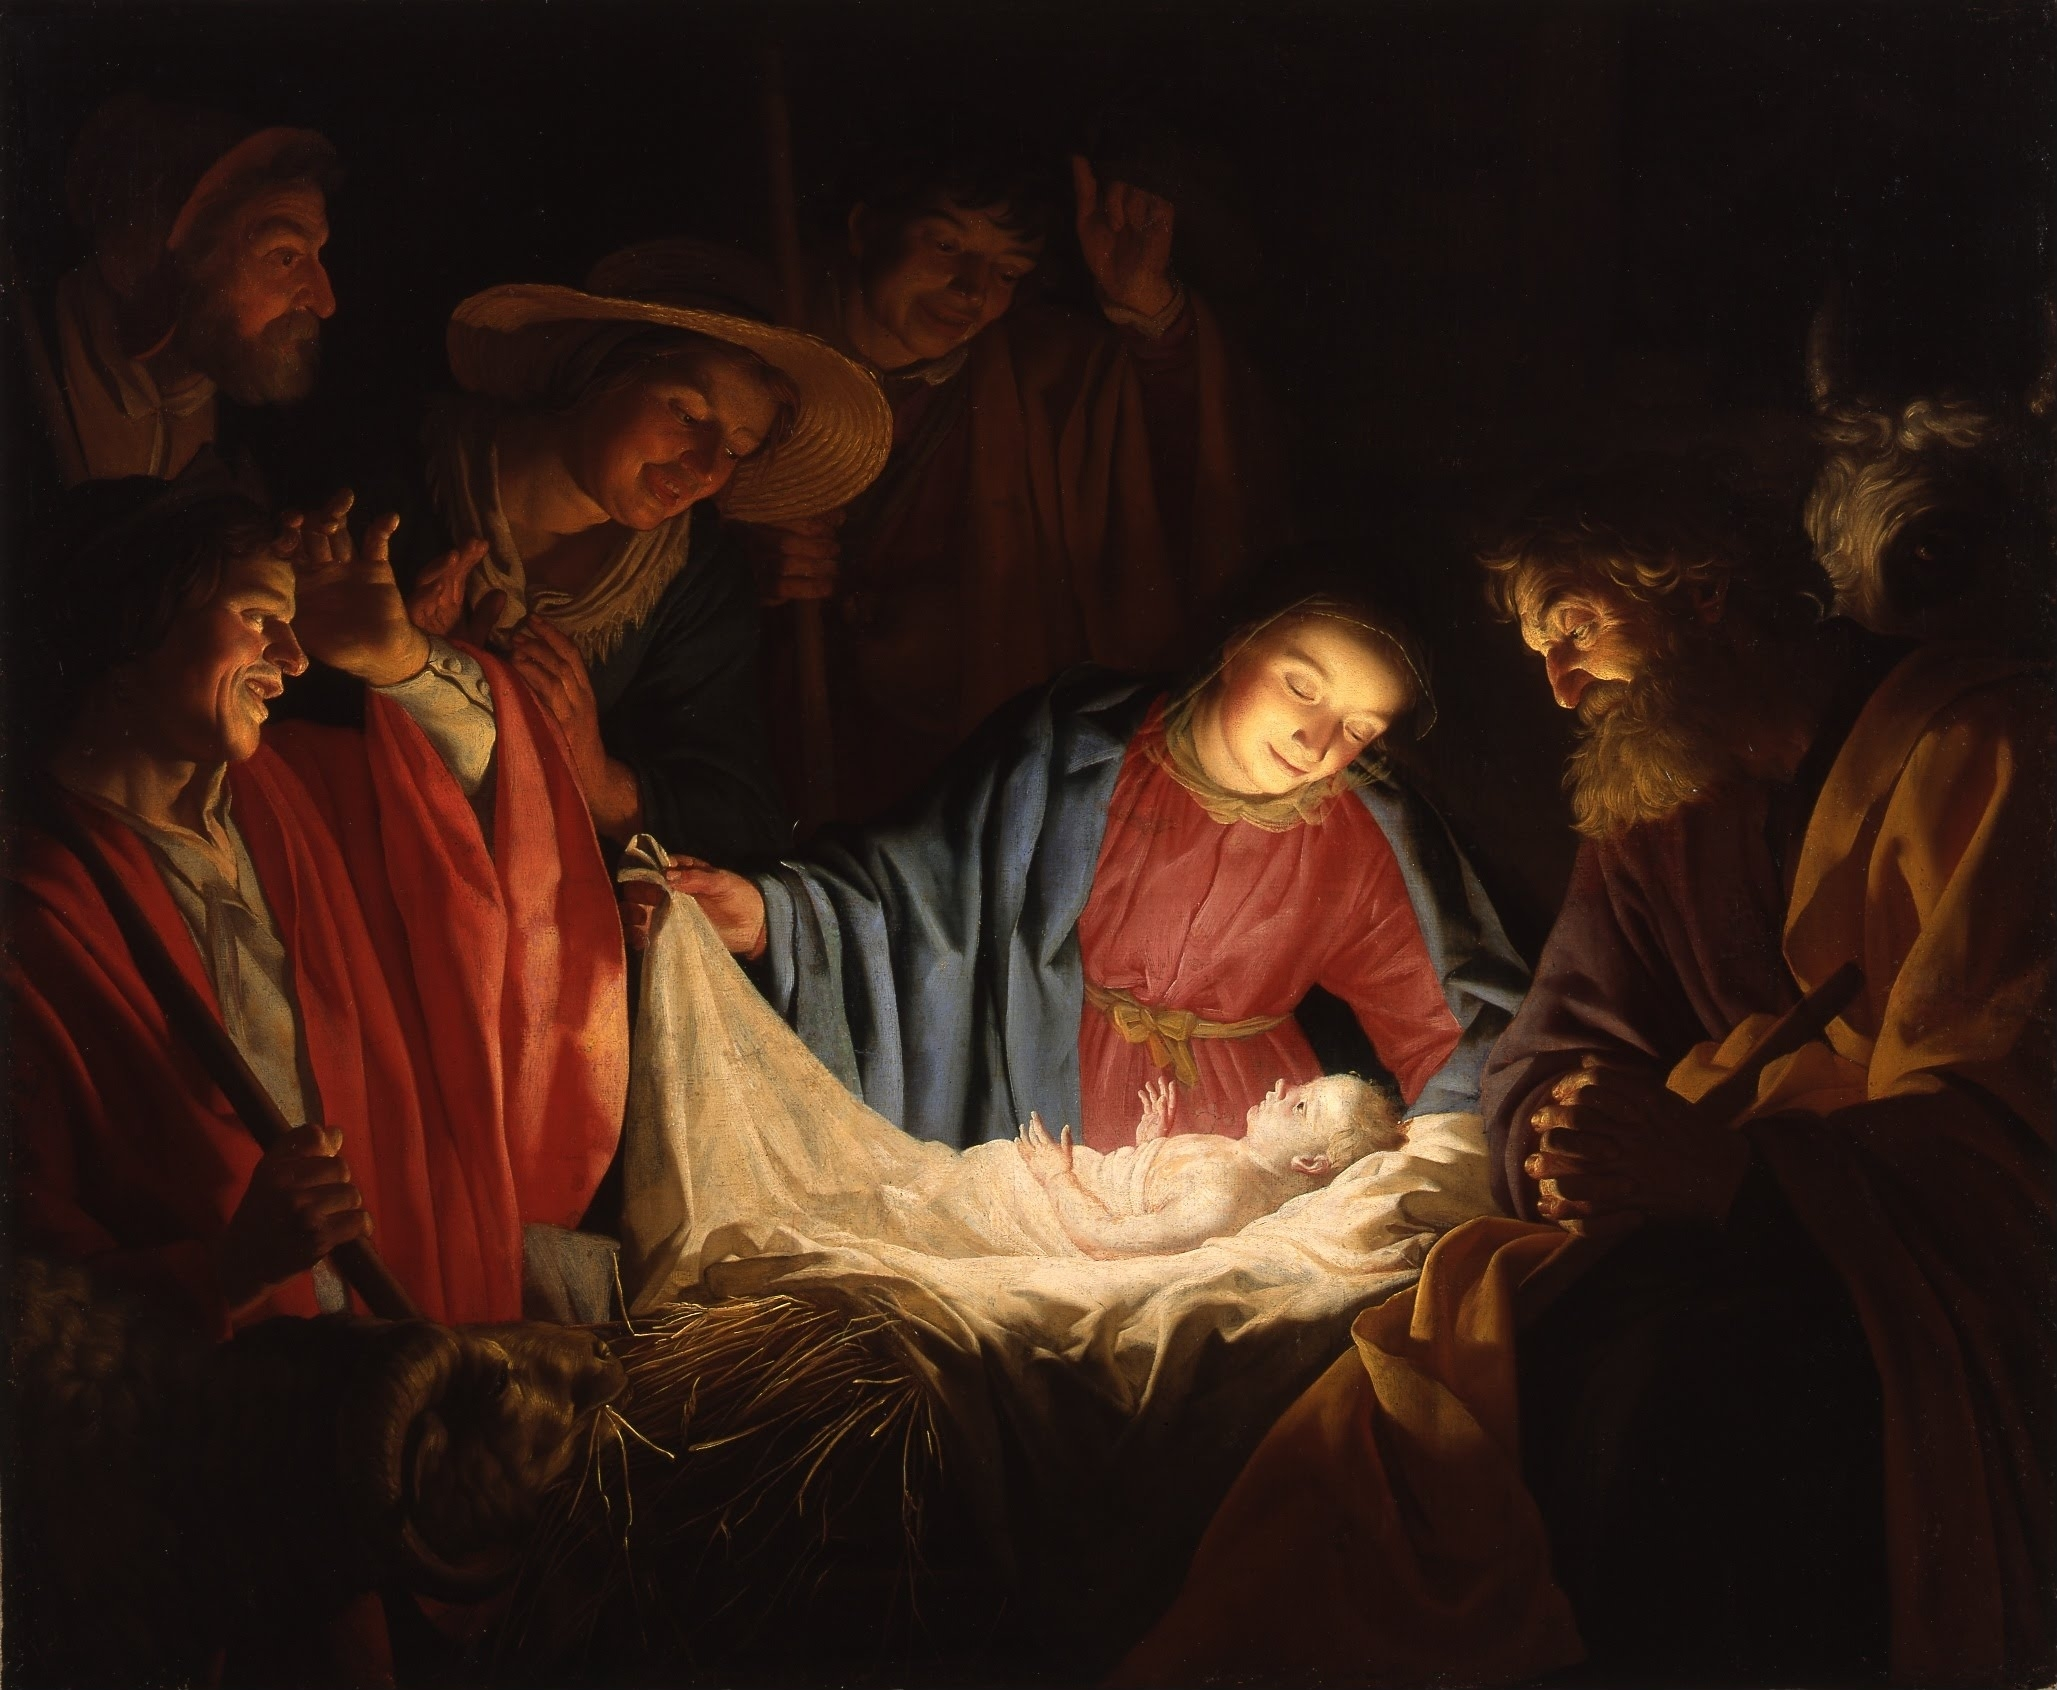 Christ Child - Wikipedia